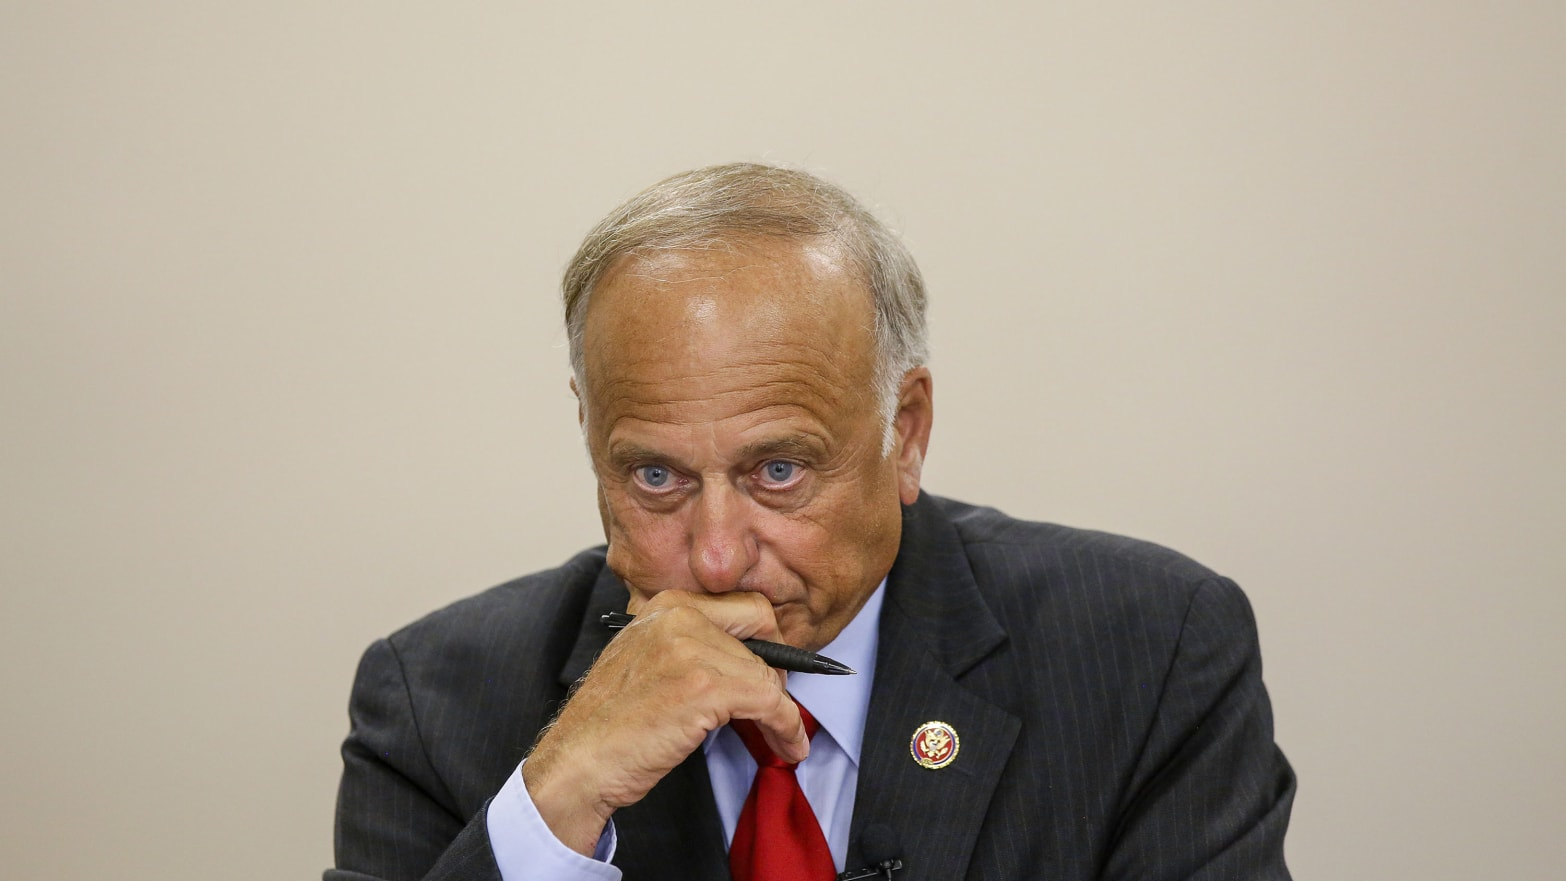 Steve King Is Broke And Has Been Abandoned by His Colleagues as He Runs for Re-Election